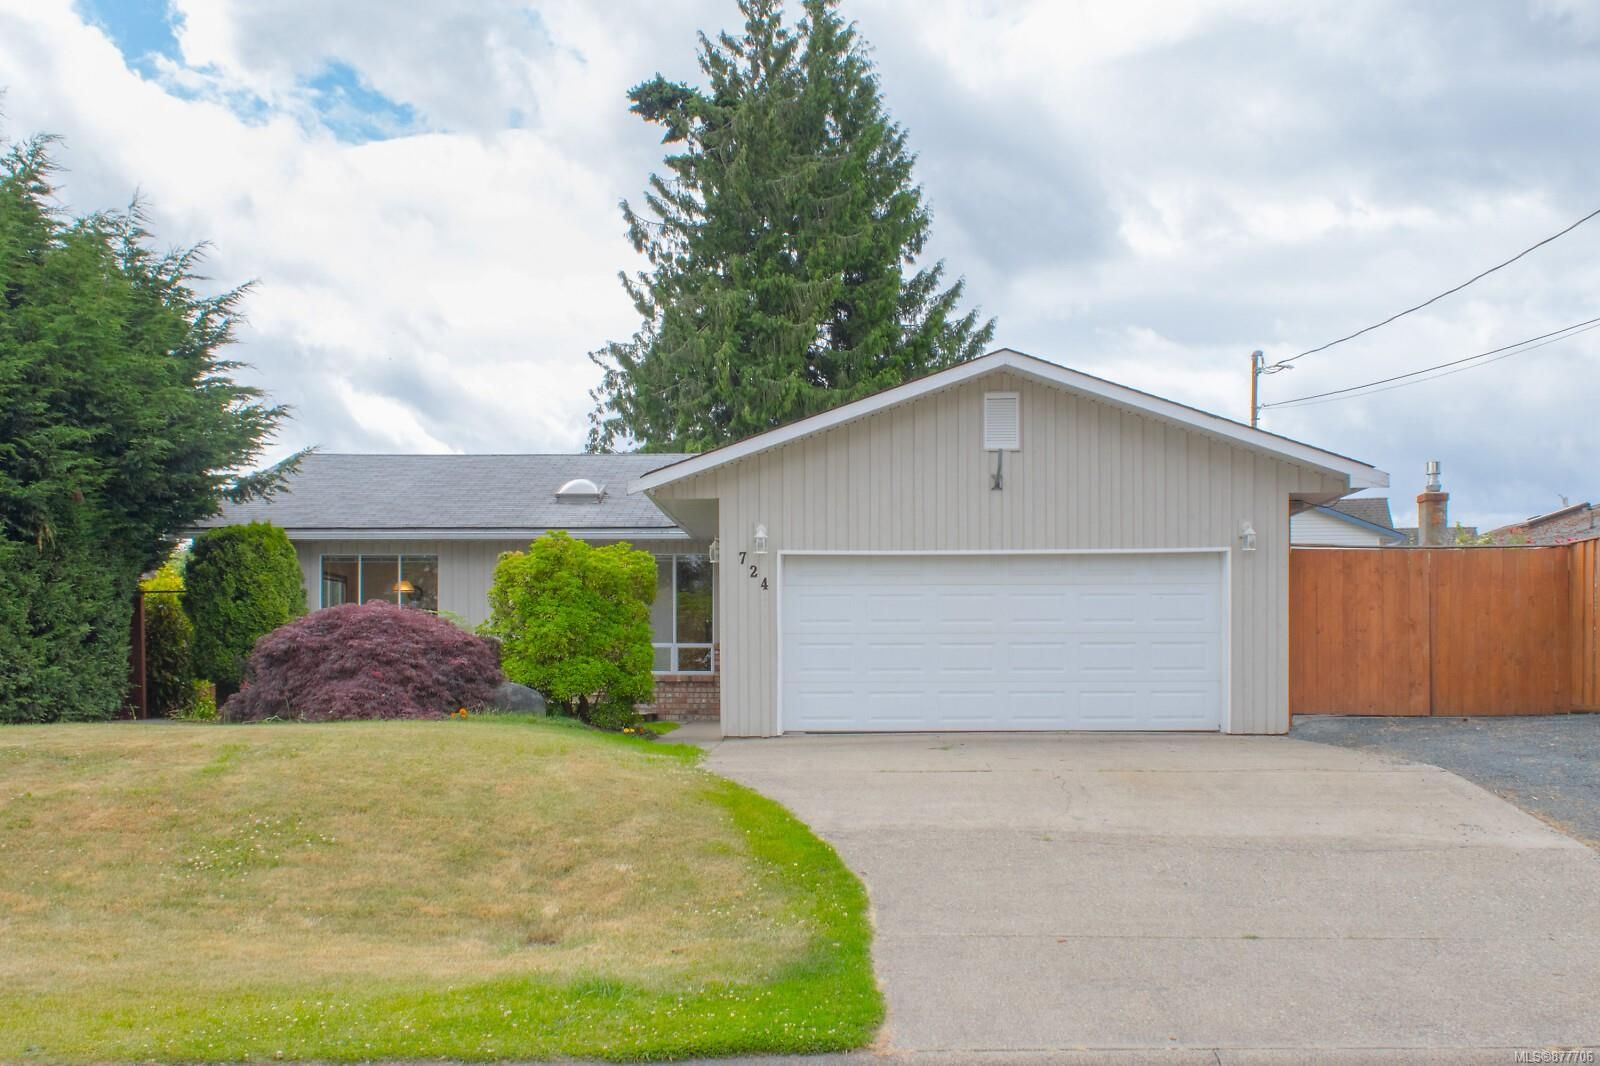 Main Photo: 724 Camas Way in : PQ Parksville House for sale (Parksville/Qualicum)  : MLS®# 877706